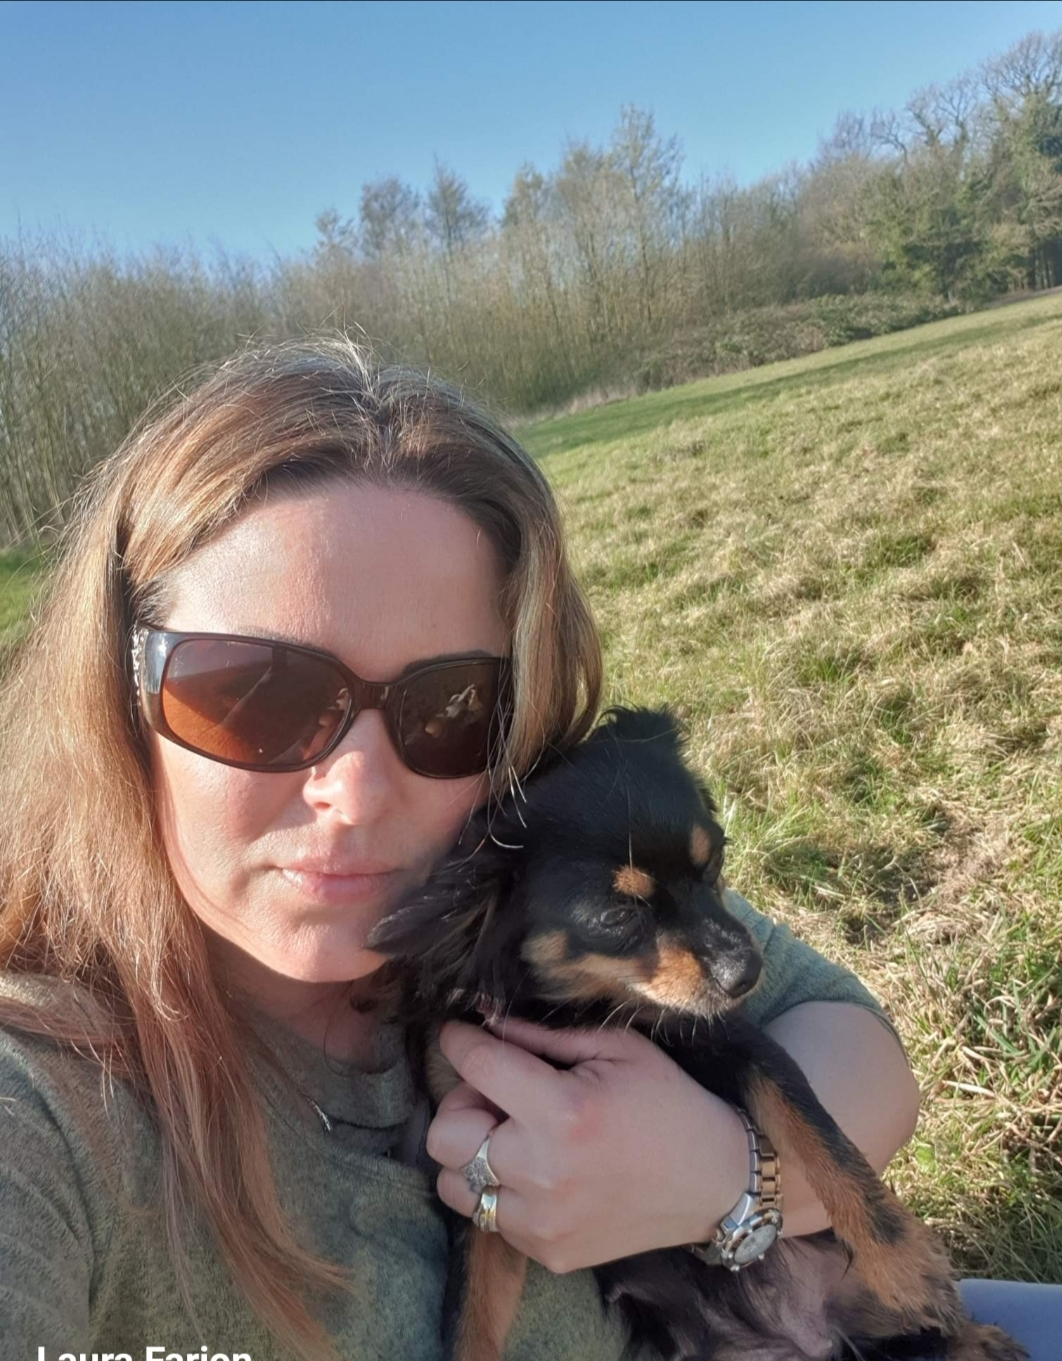 Owner of dog suspected of fatal attack on chihuahua in Trowbridge speaks out